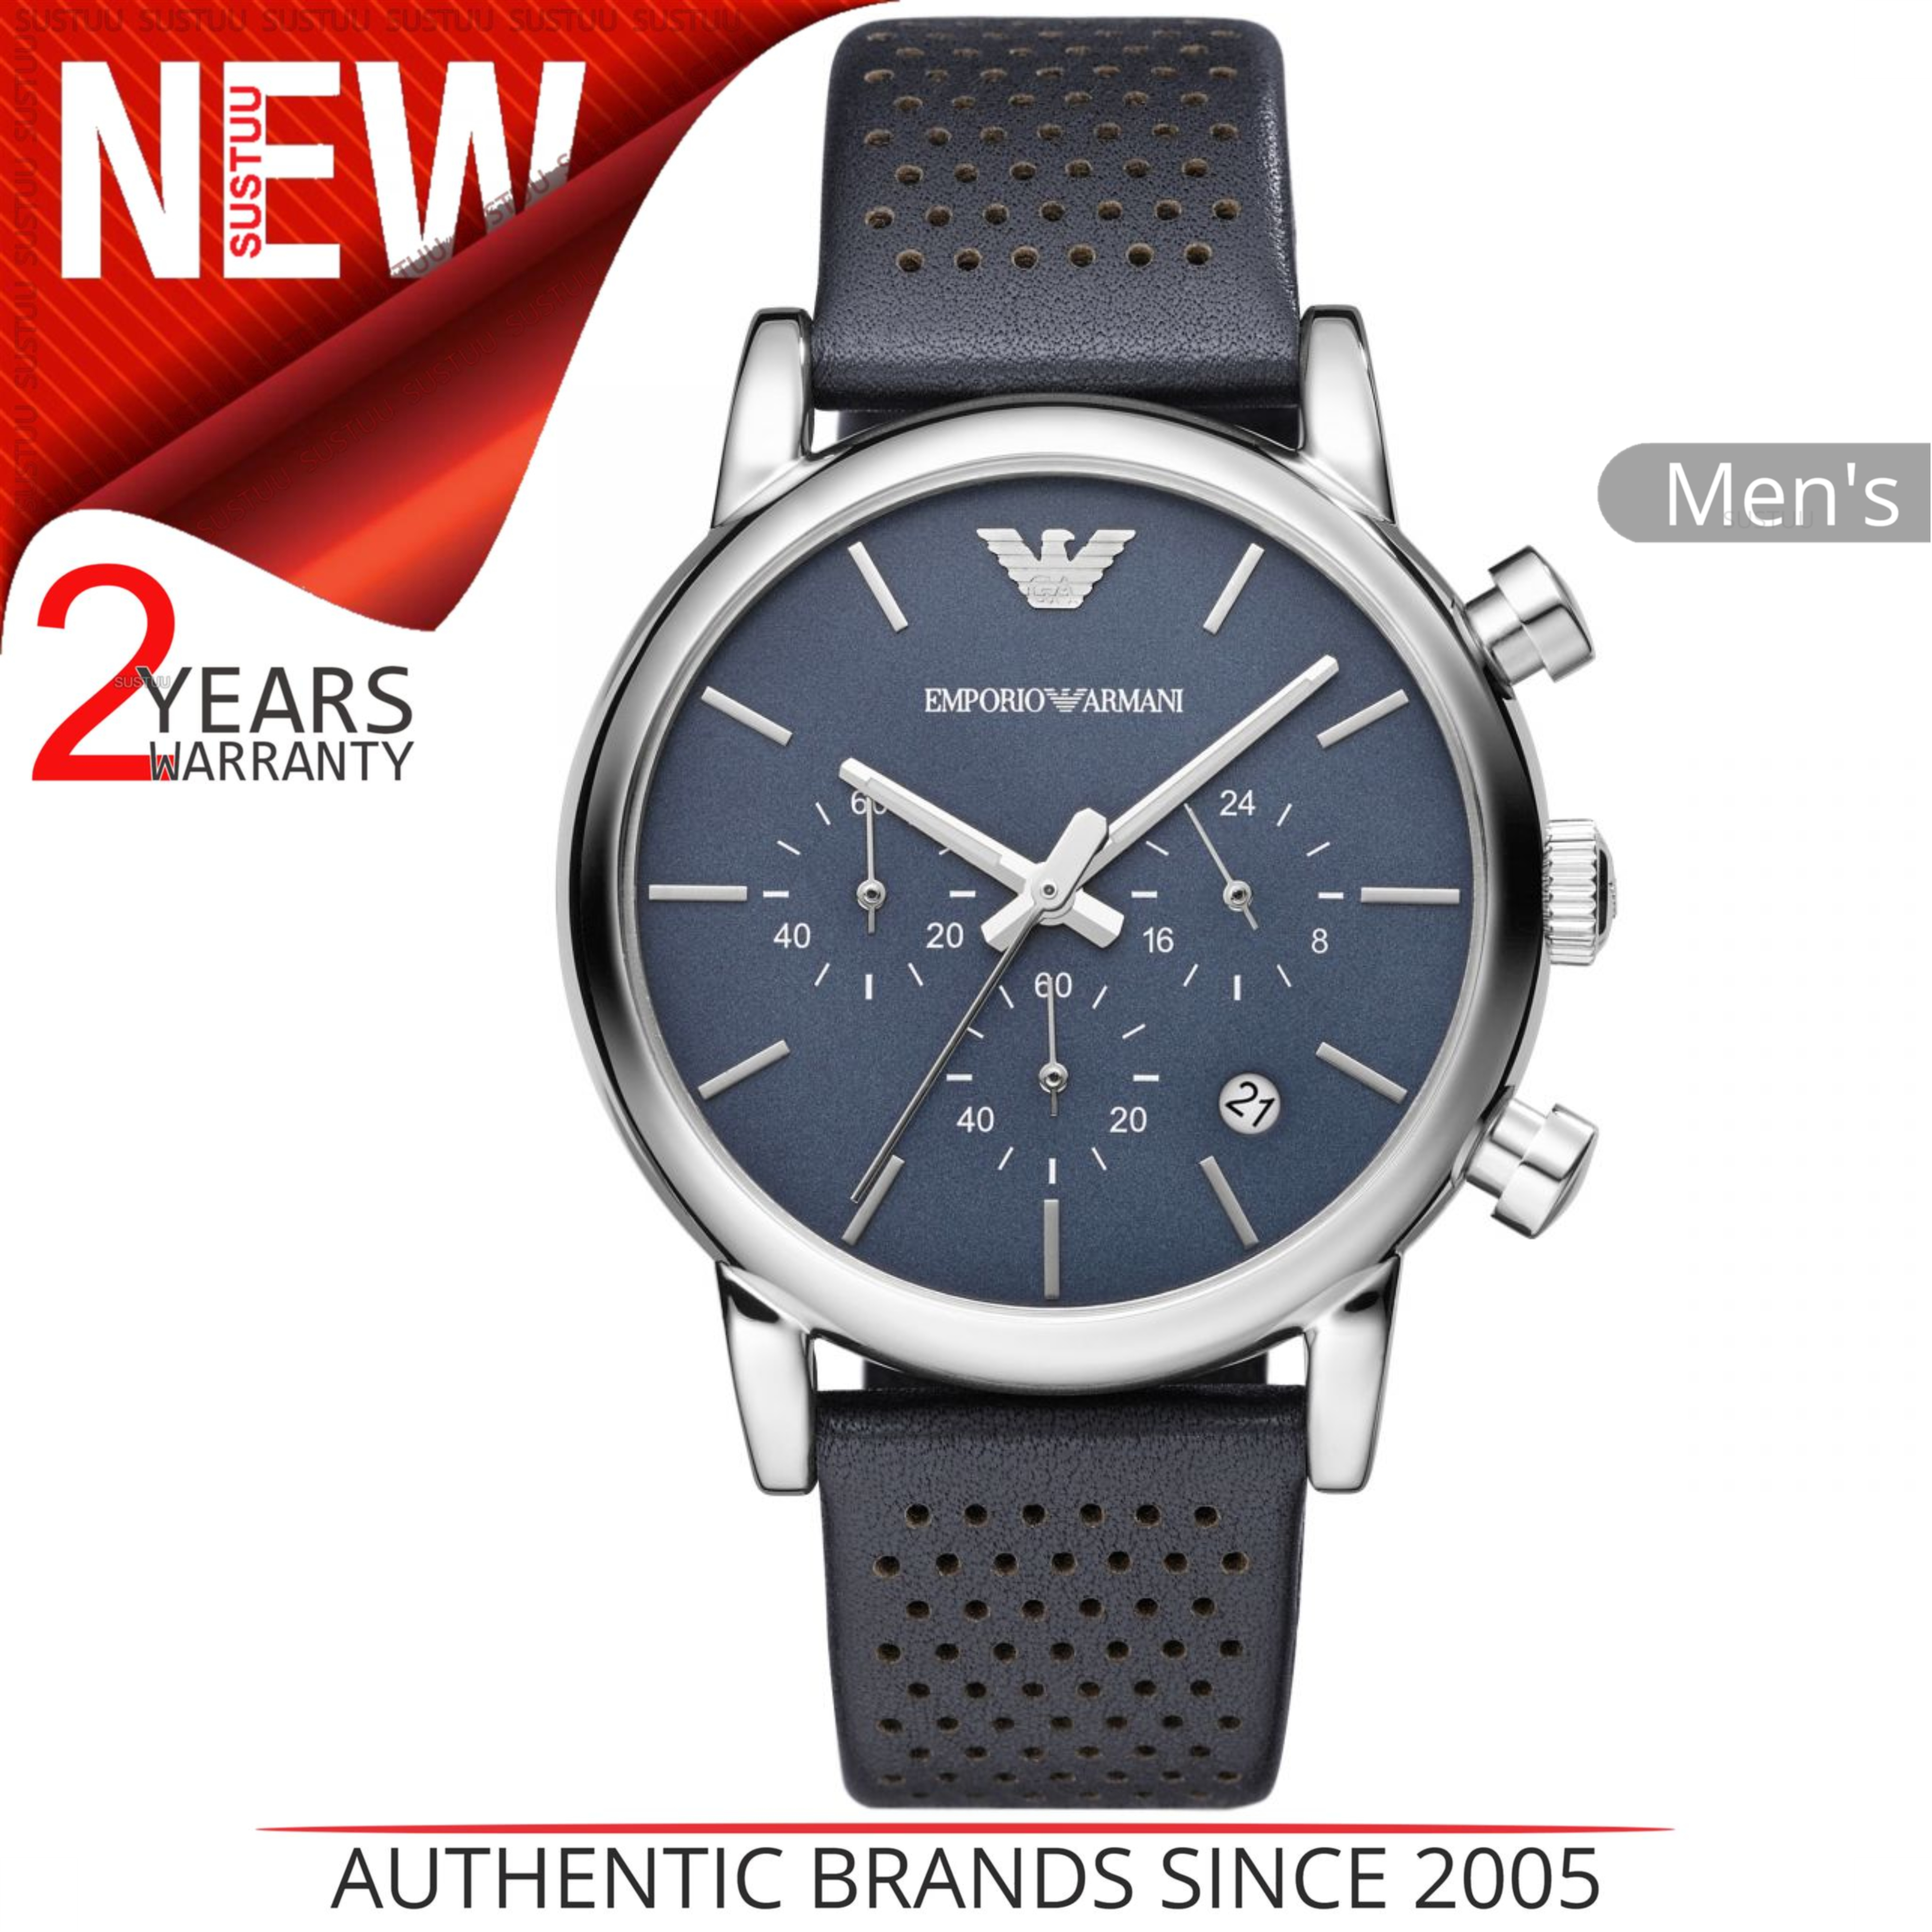 0b8a8b82114 Details about Emporio Armani Classic Men s Watch│Chronograph Blue Dial│blue  Leather Strap│1736